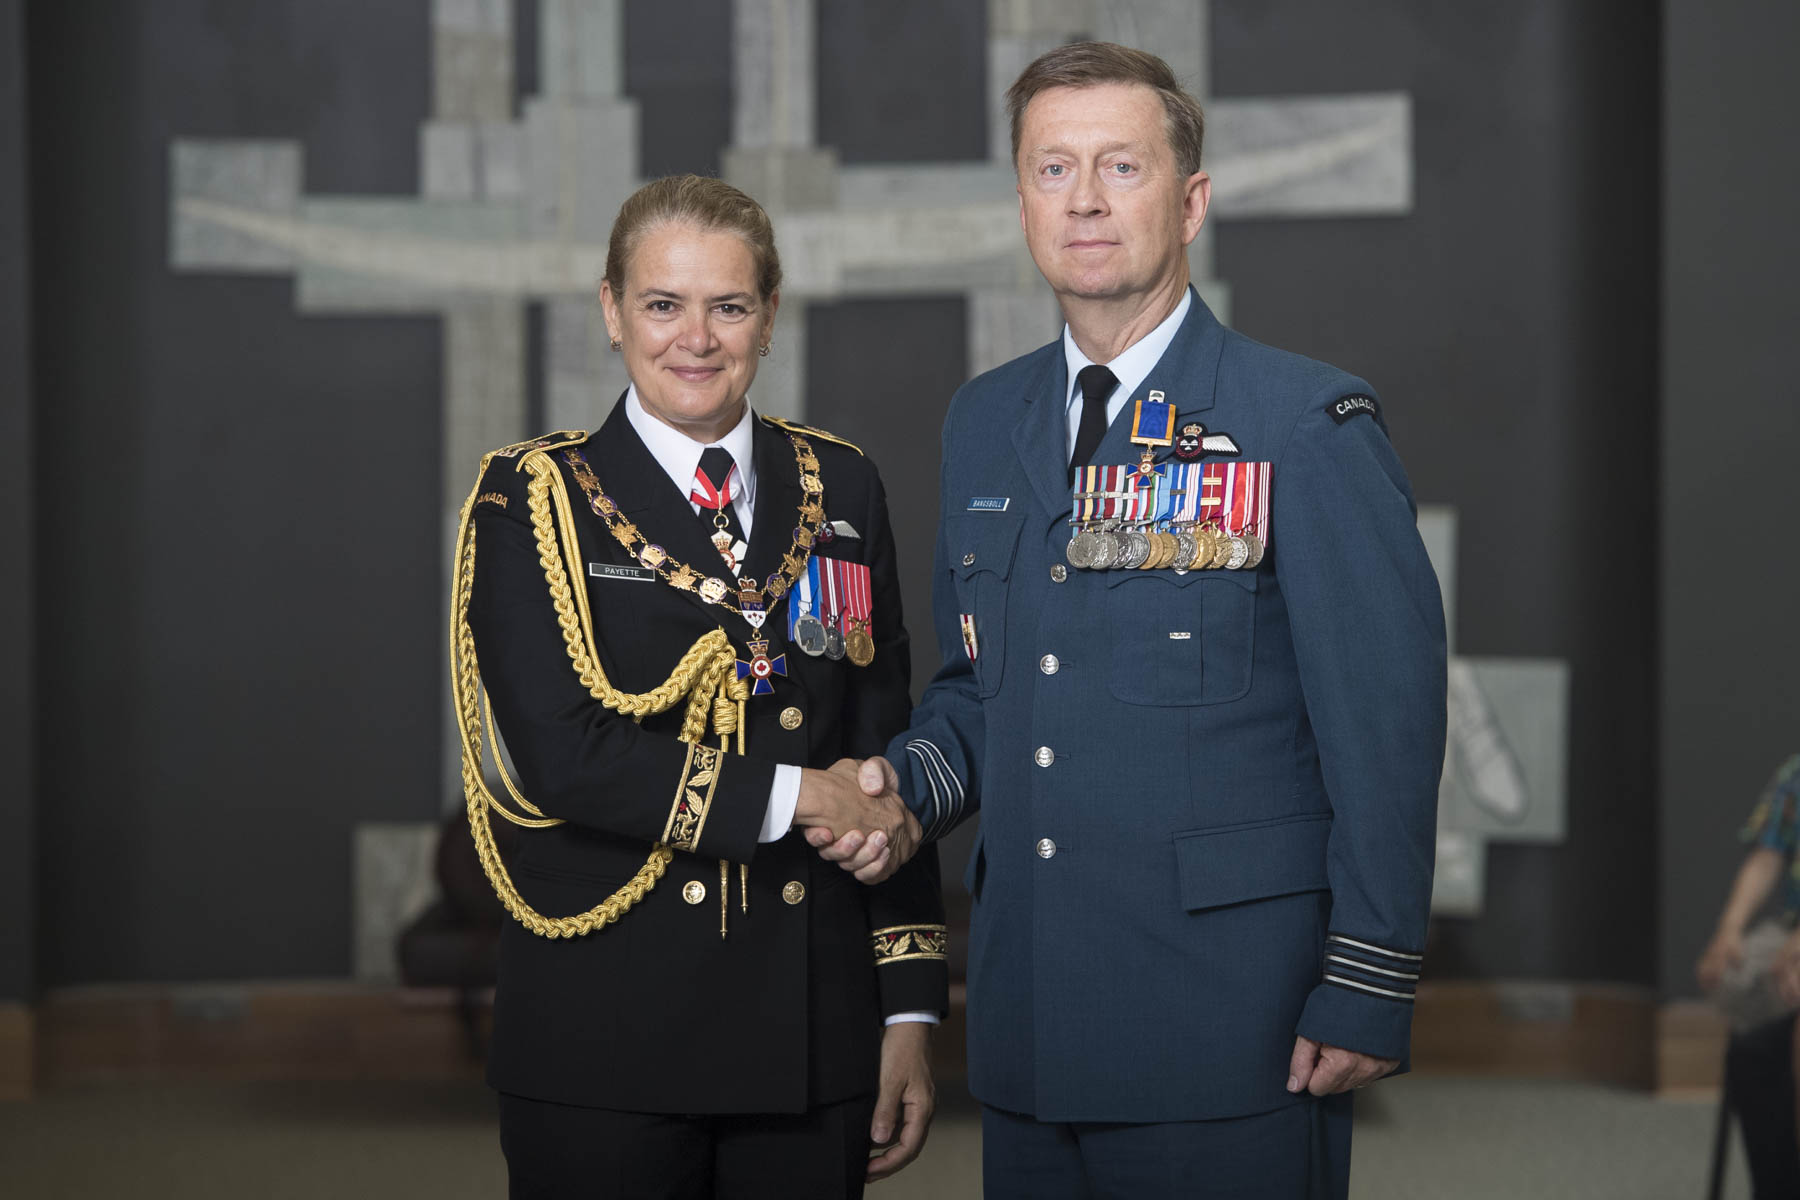 Her Excellency bestowed the honour of Officer of the Order of Military Merit upon Lieutenant-Colonel Brook Garrett Bangsboll, O.M.M., C.D.